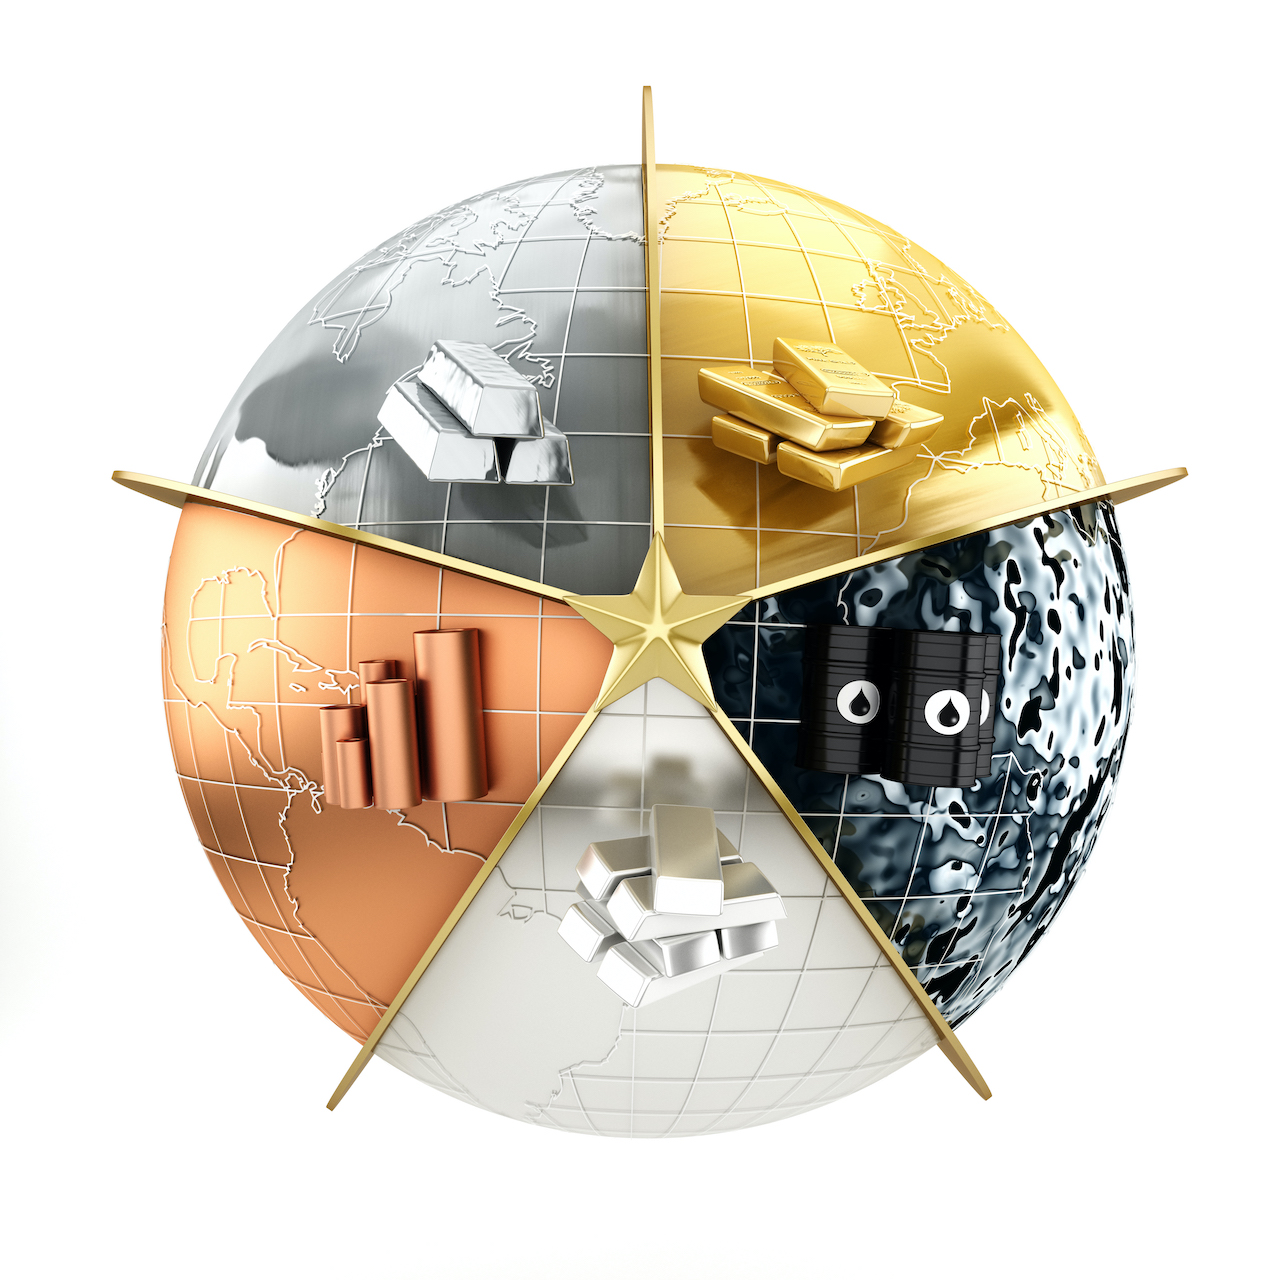 Popular investment tools: precious metals; gold, silver, copper, platinum and crude oil placed on a globe with earth map.